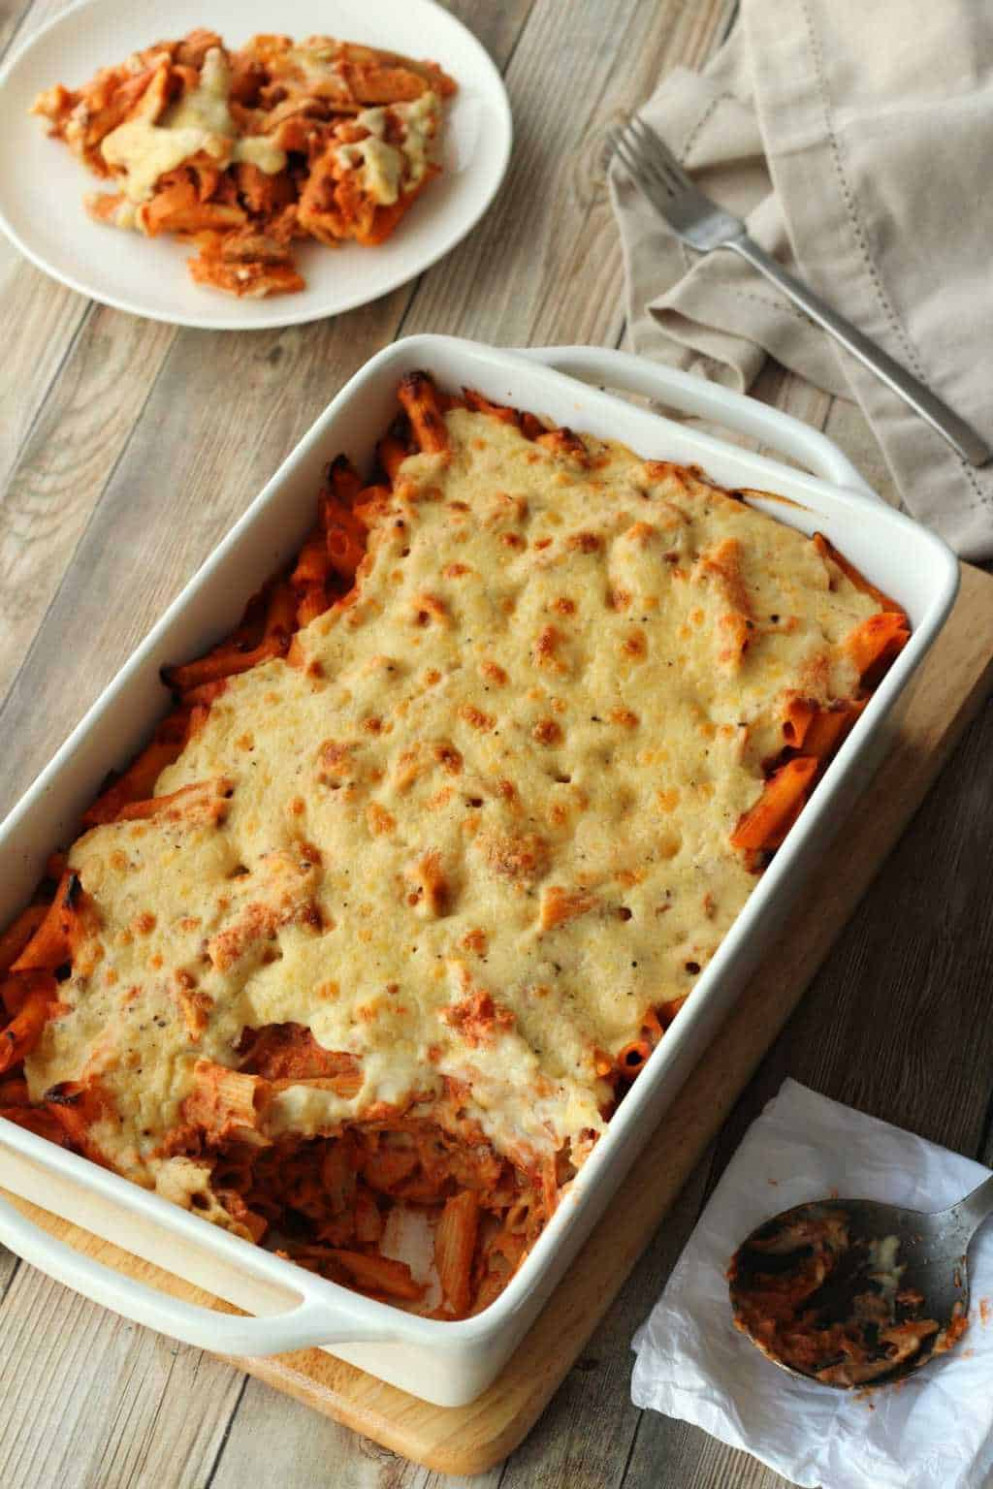 Vegan Pasta Bake - Rich And Creamy! - Loving It Vegan - Pasta Bake Recipes Vegetarian